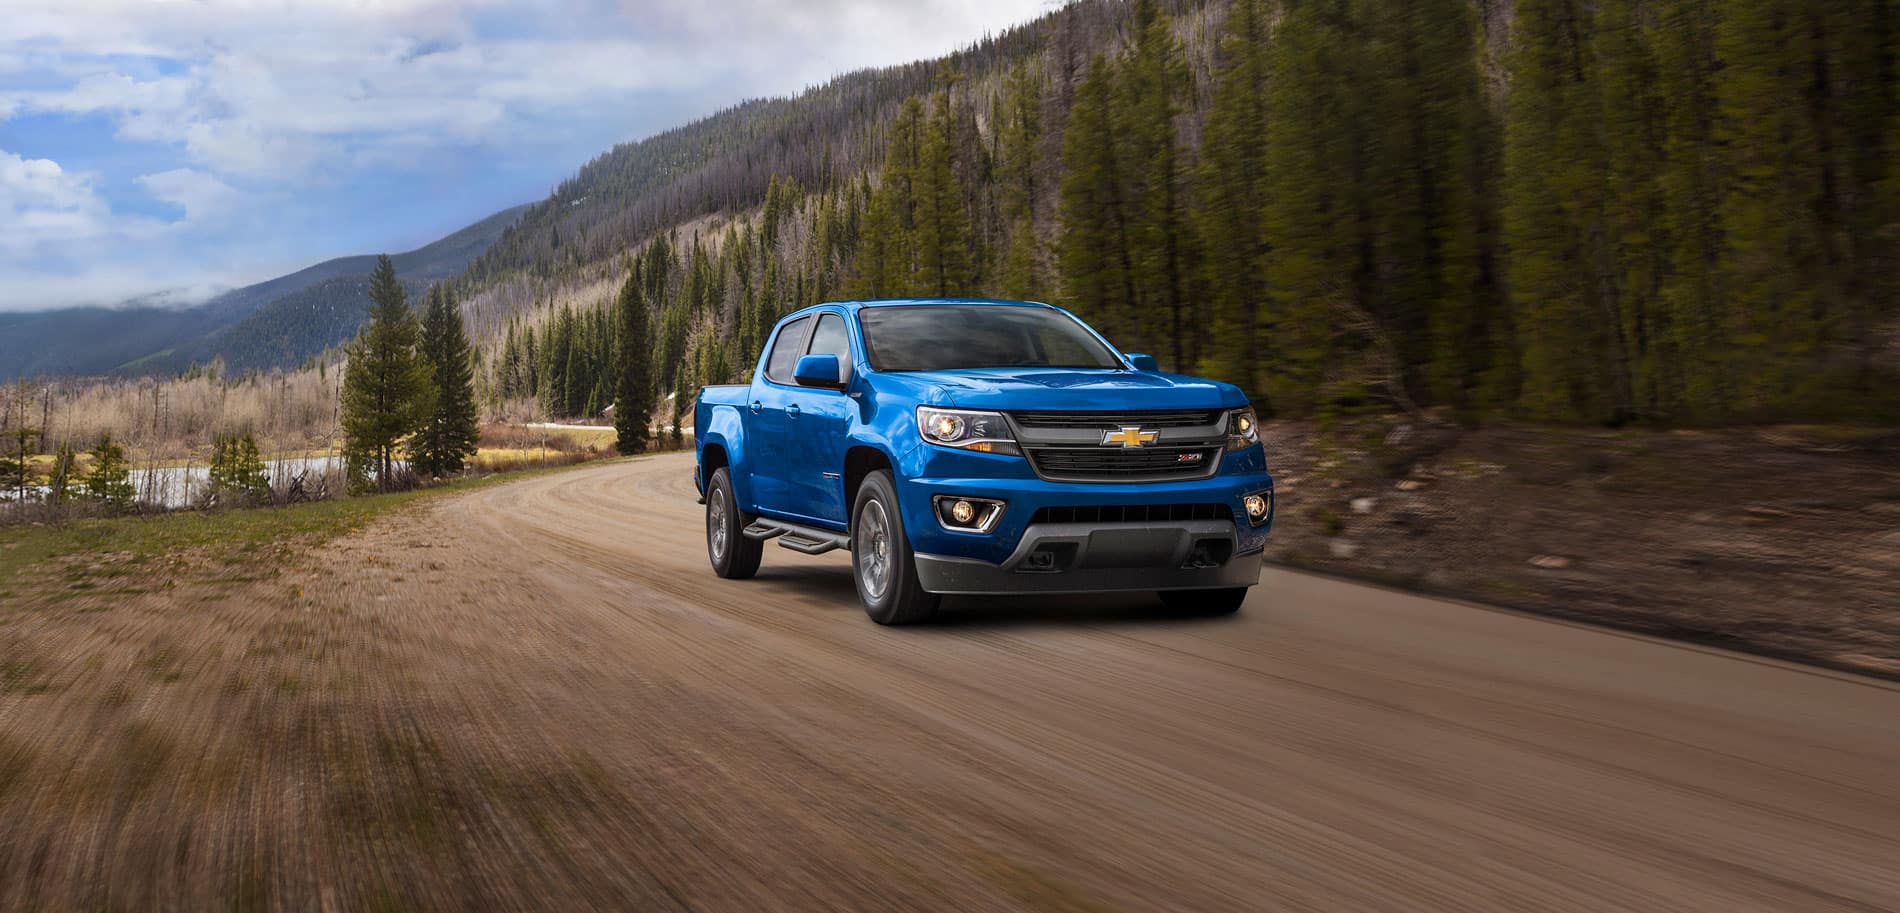 hight resolution of like the interior the 2019 colorado and 2019 canyon are identical under the skin both models feature three engine options starting with a 2 5 liter